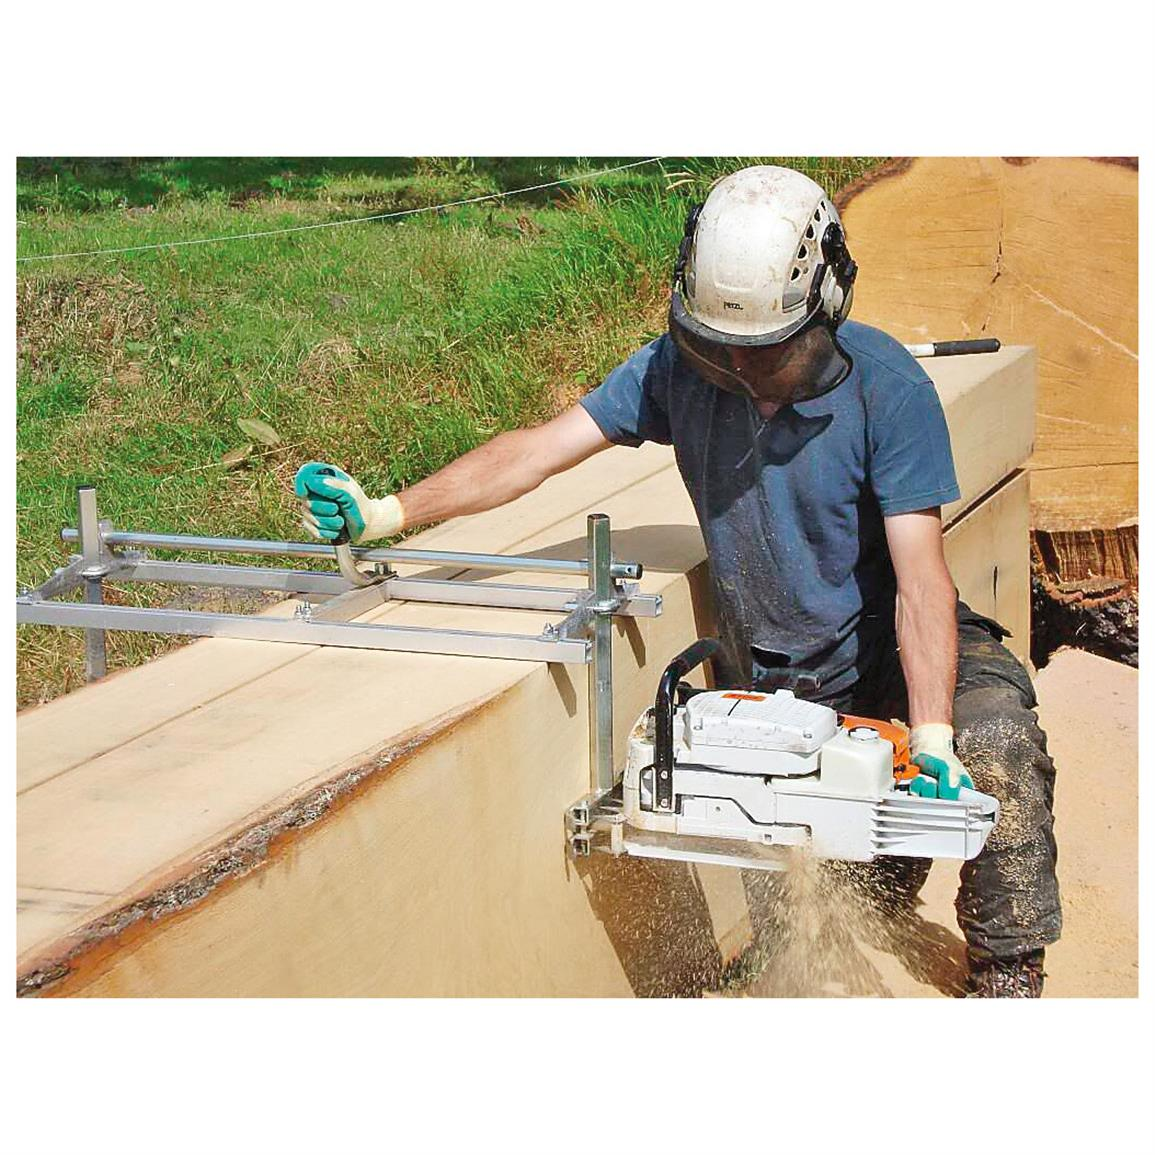 Works for big or small jobs - will cut any length of lumber, depending on your log length